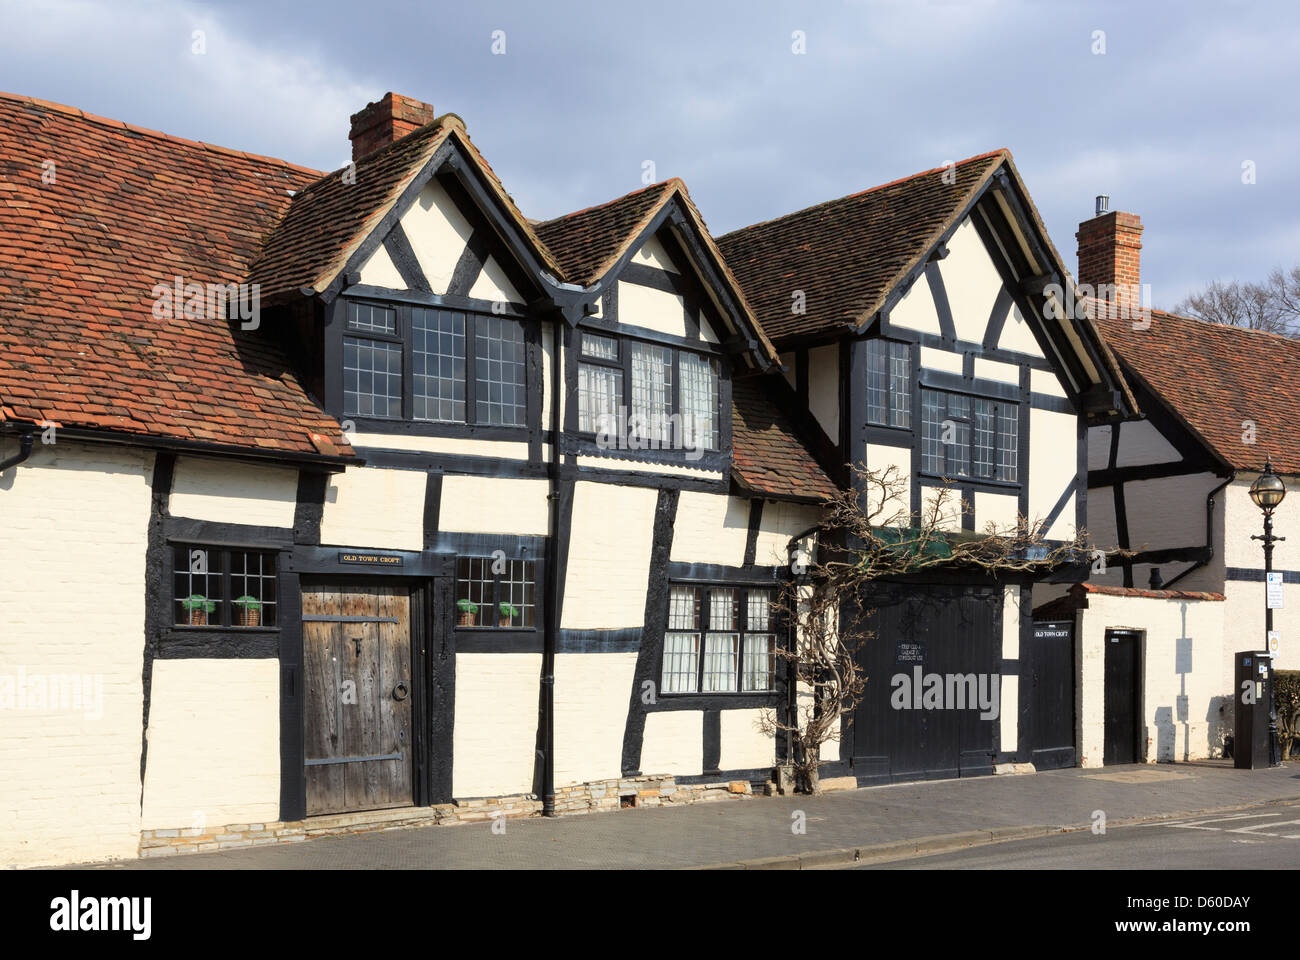 16th century Old Town Croft timbered house grade II listed building in Stratford-upon-Avon, Warwickshire, England, Stock Photo